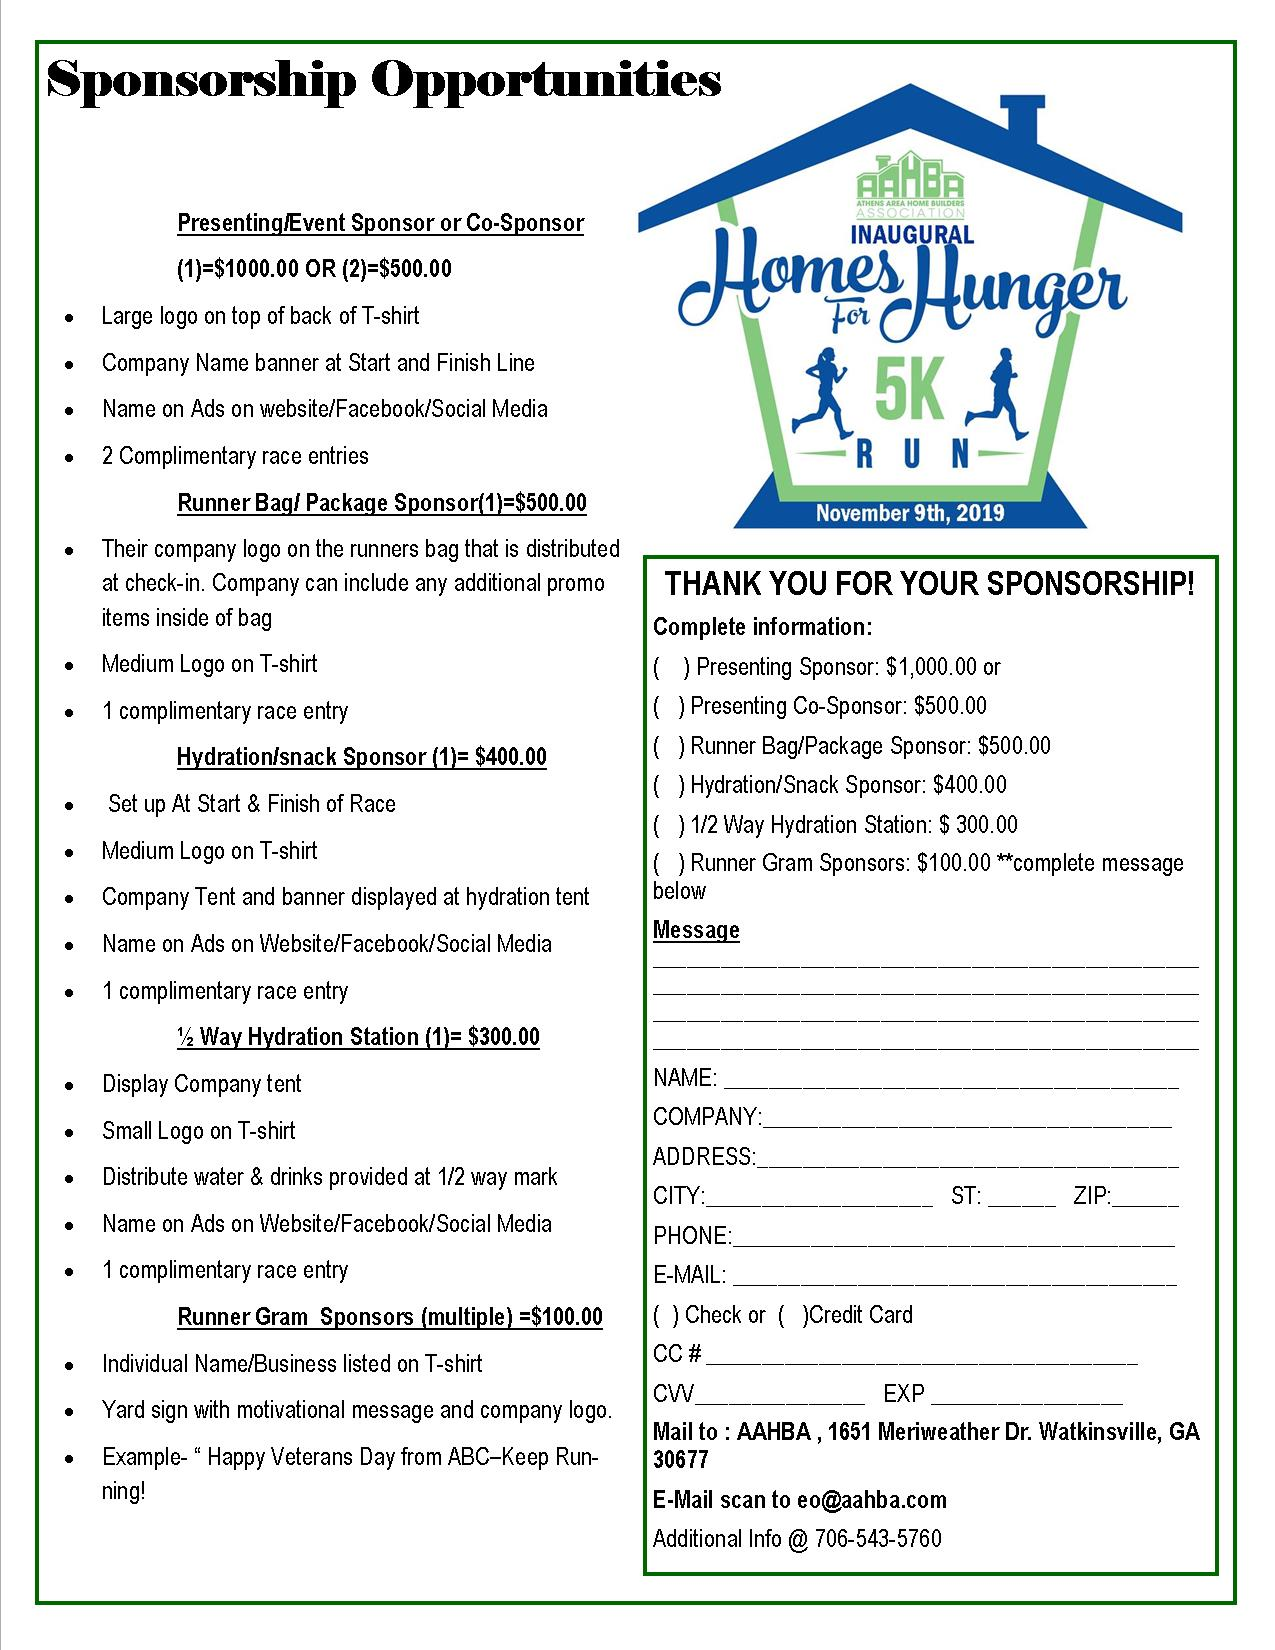 AAHBA Homes For Hunger Sponsorship Form